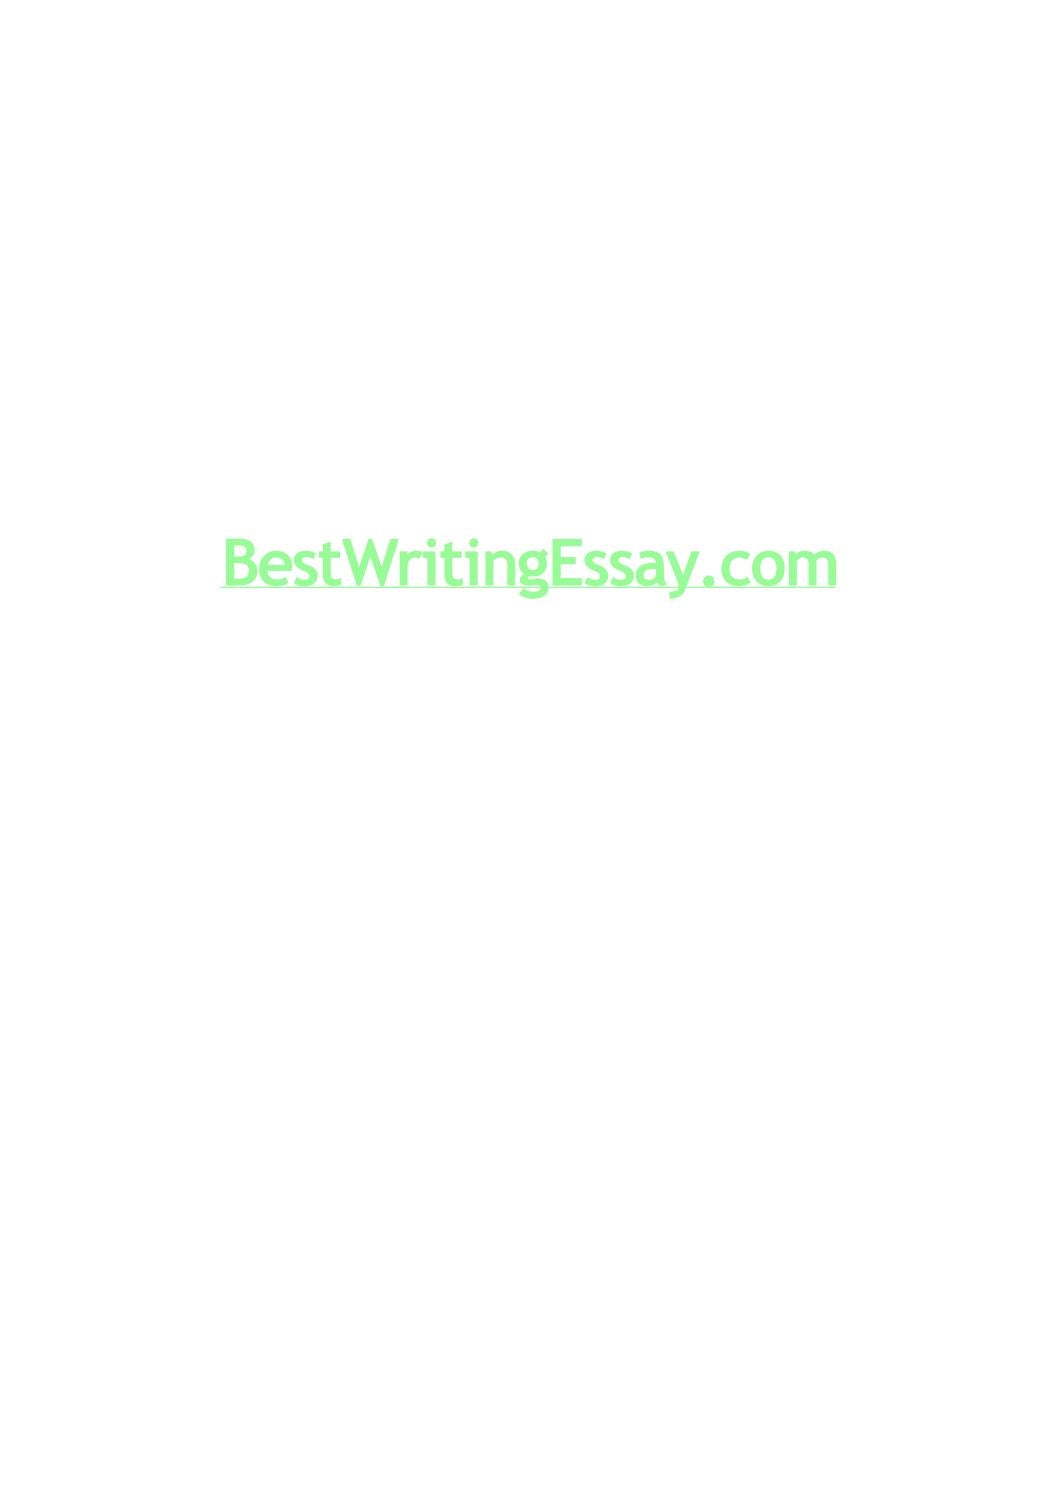 Professional home work editing service gb